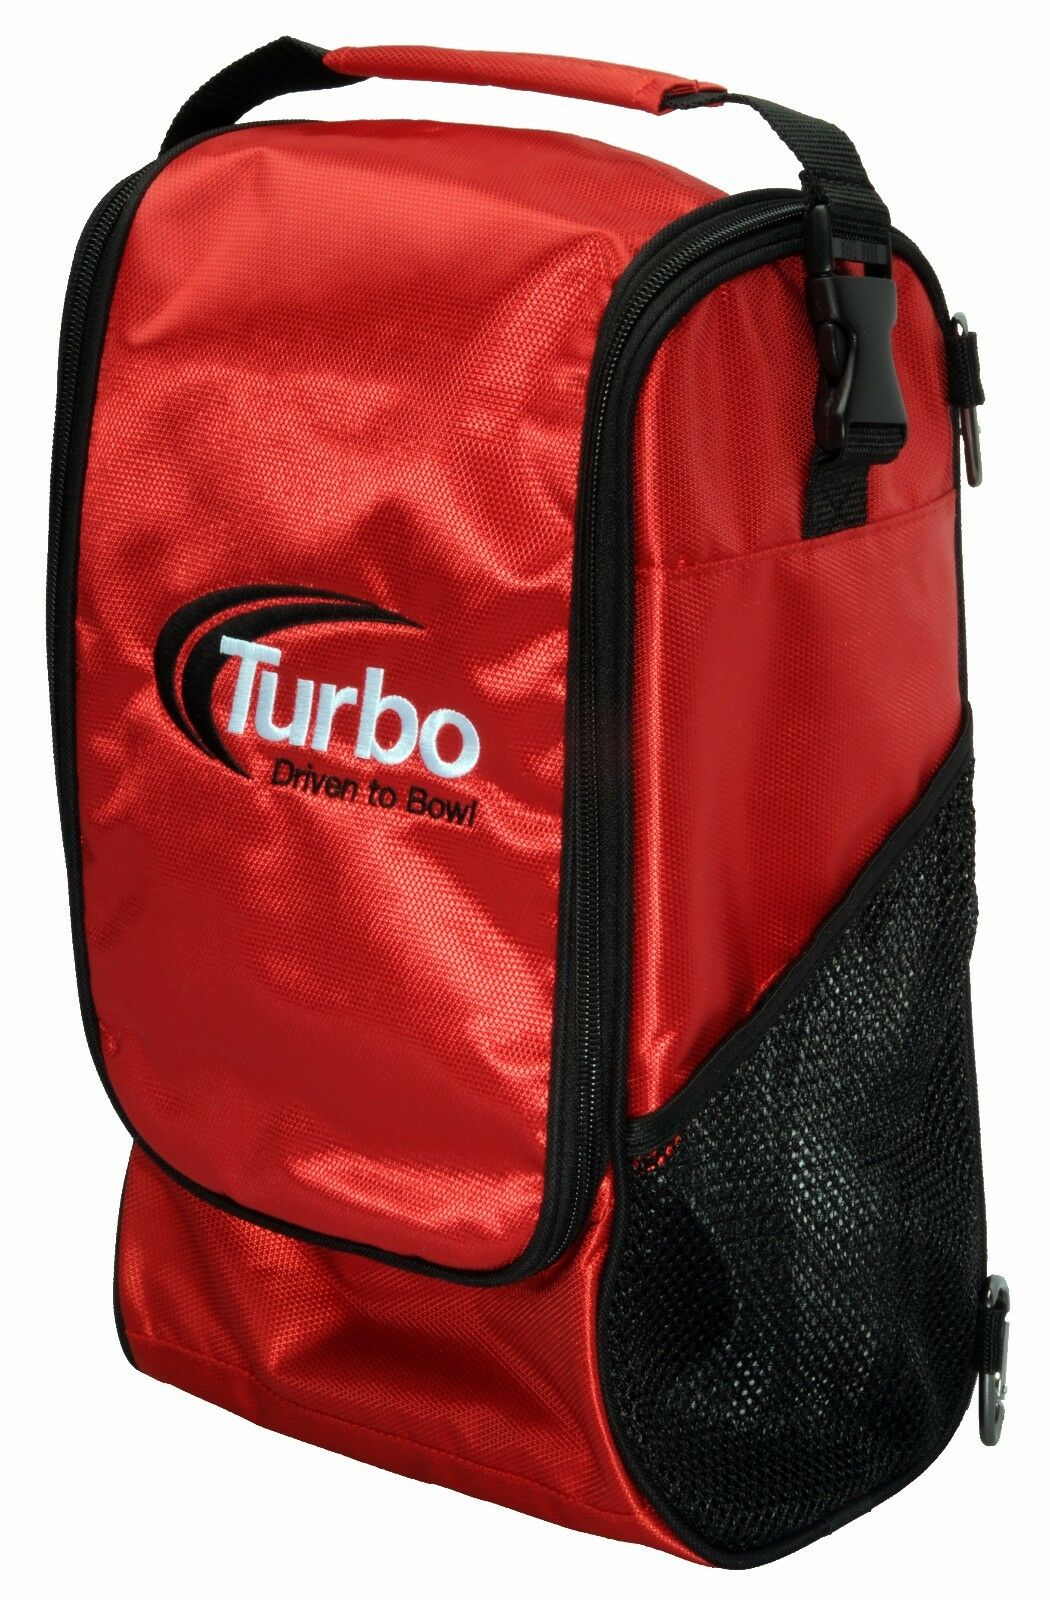 Turbo Driven to Bowl shoes Bag